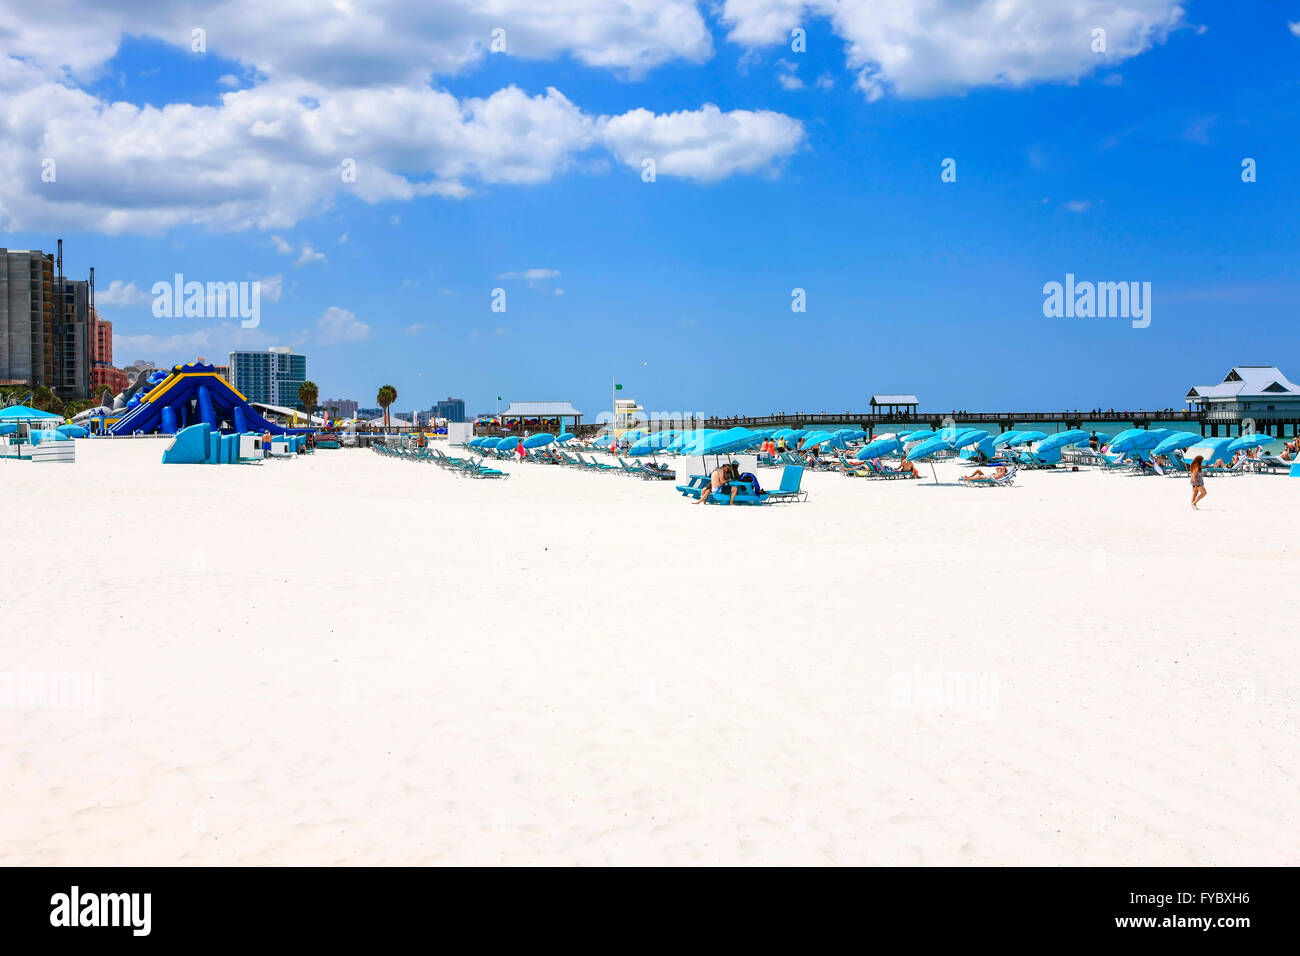 Blue umbrellas, cabanas and people on Clearwater beach Florida, voted the number one beach in America - Stock Image